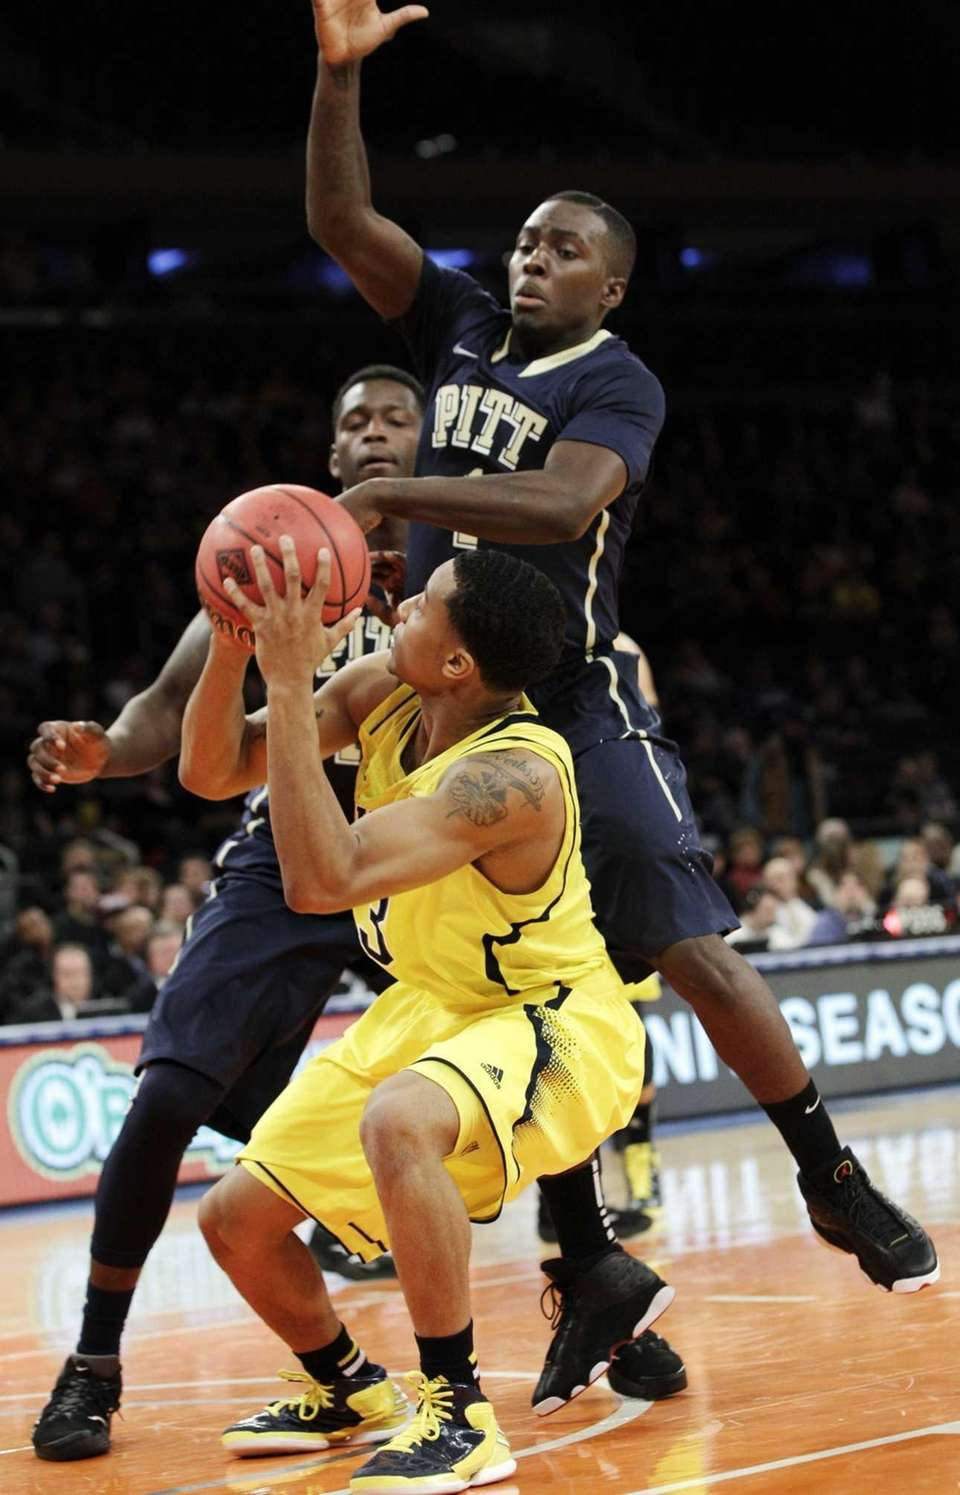 Pittsburgh guard Tray Woodall goes for the block